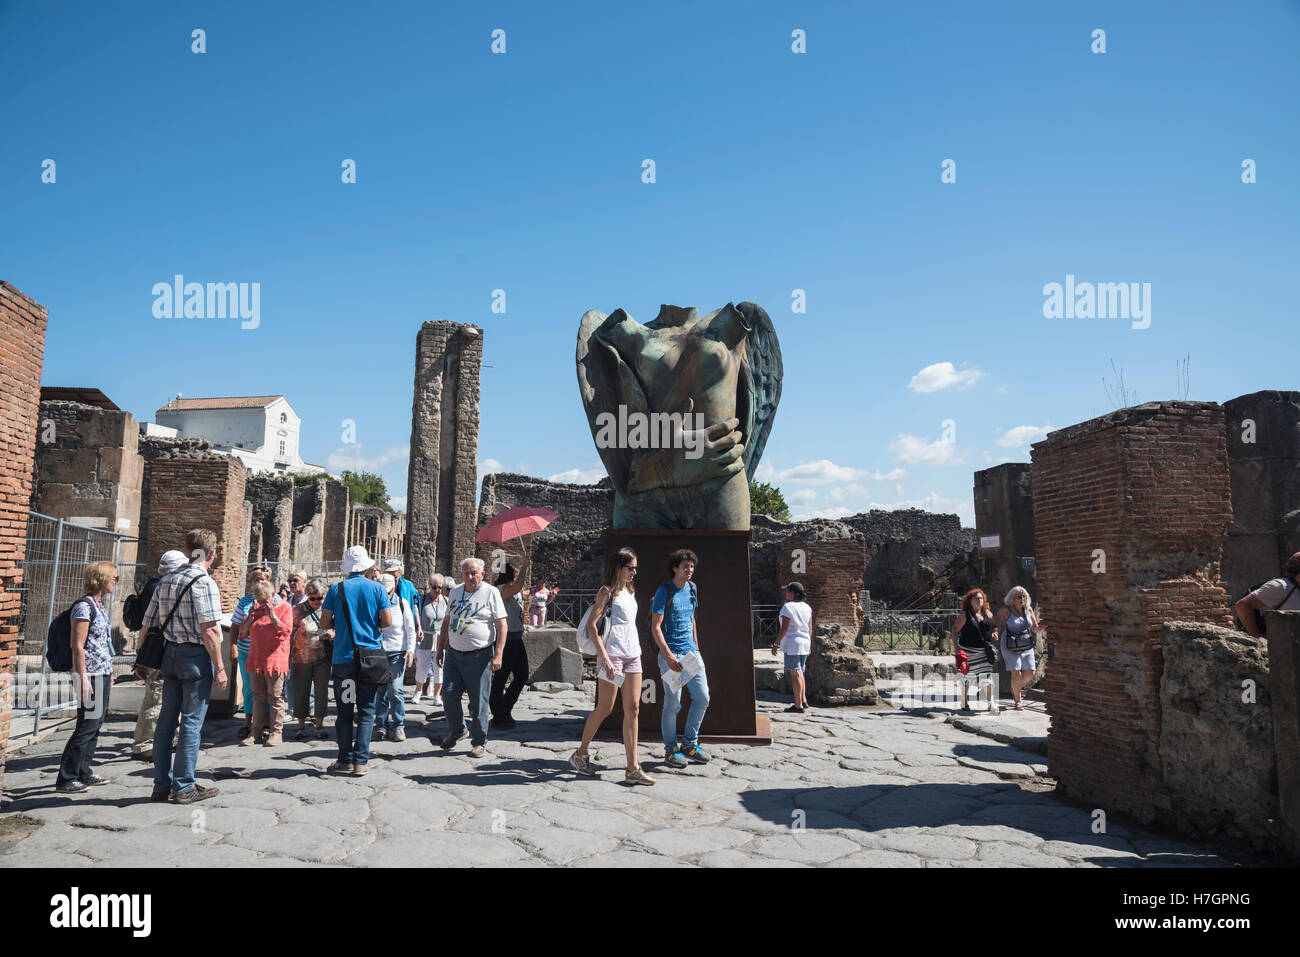 Tourists on the  ancient Pompeii streets,  archaeological site, Campania region, Italy - Stock Image